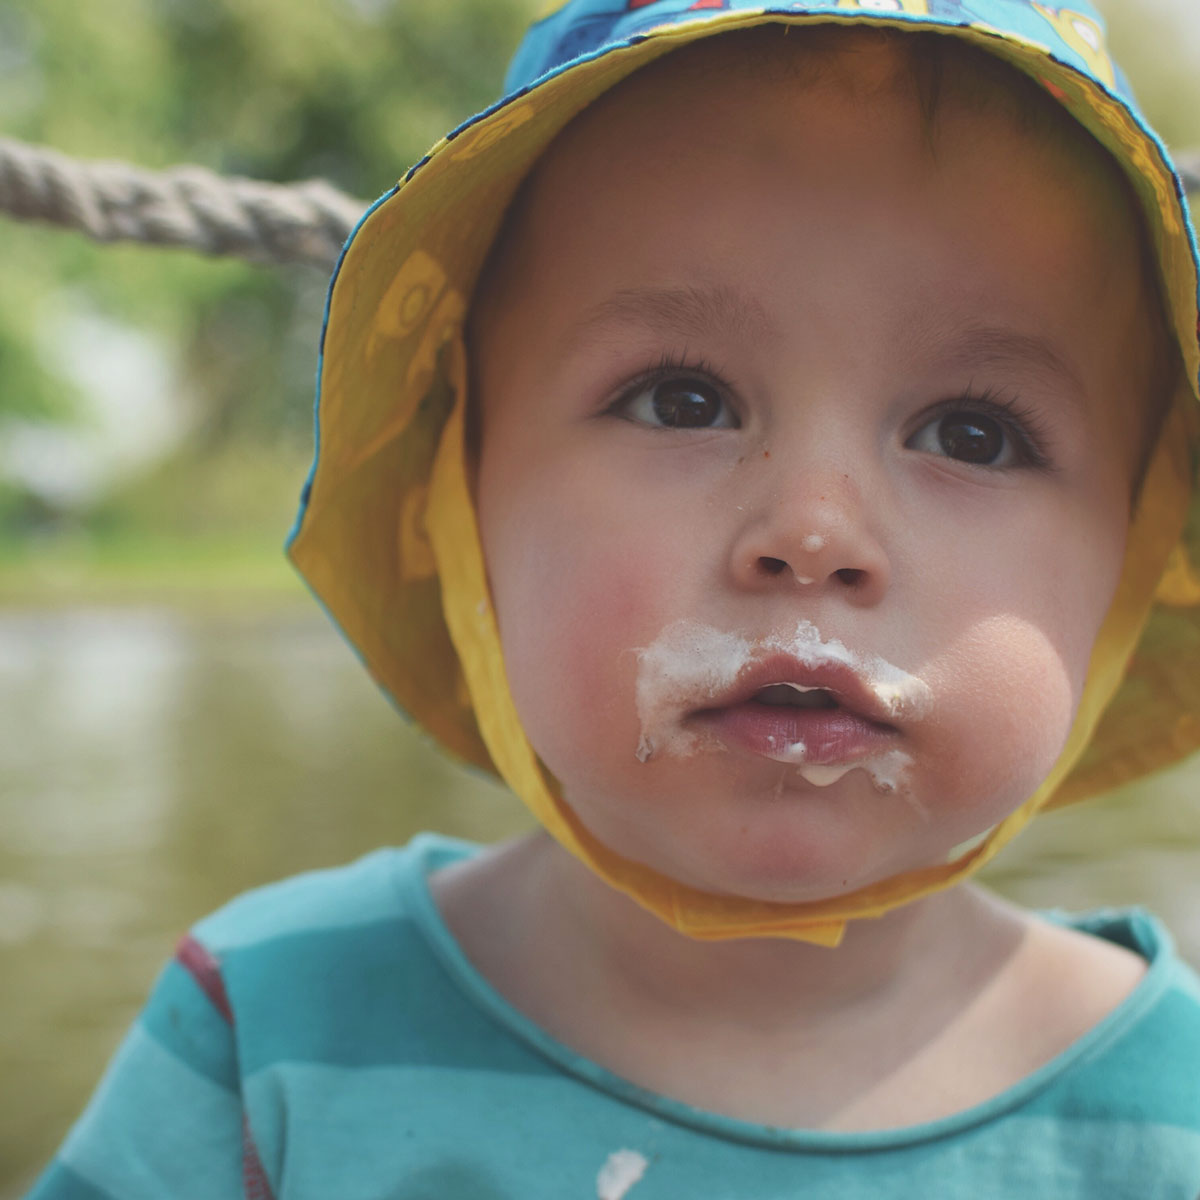 One Beautiful Sweaty Sunday at Stratford-upon-Avon - Toddler with ice-cream around his mouth on the boat on Summers day